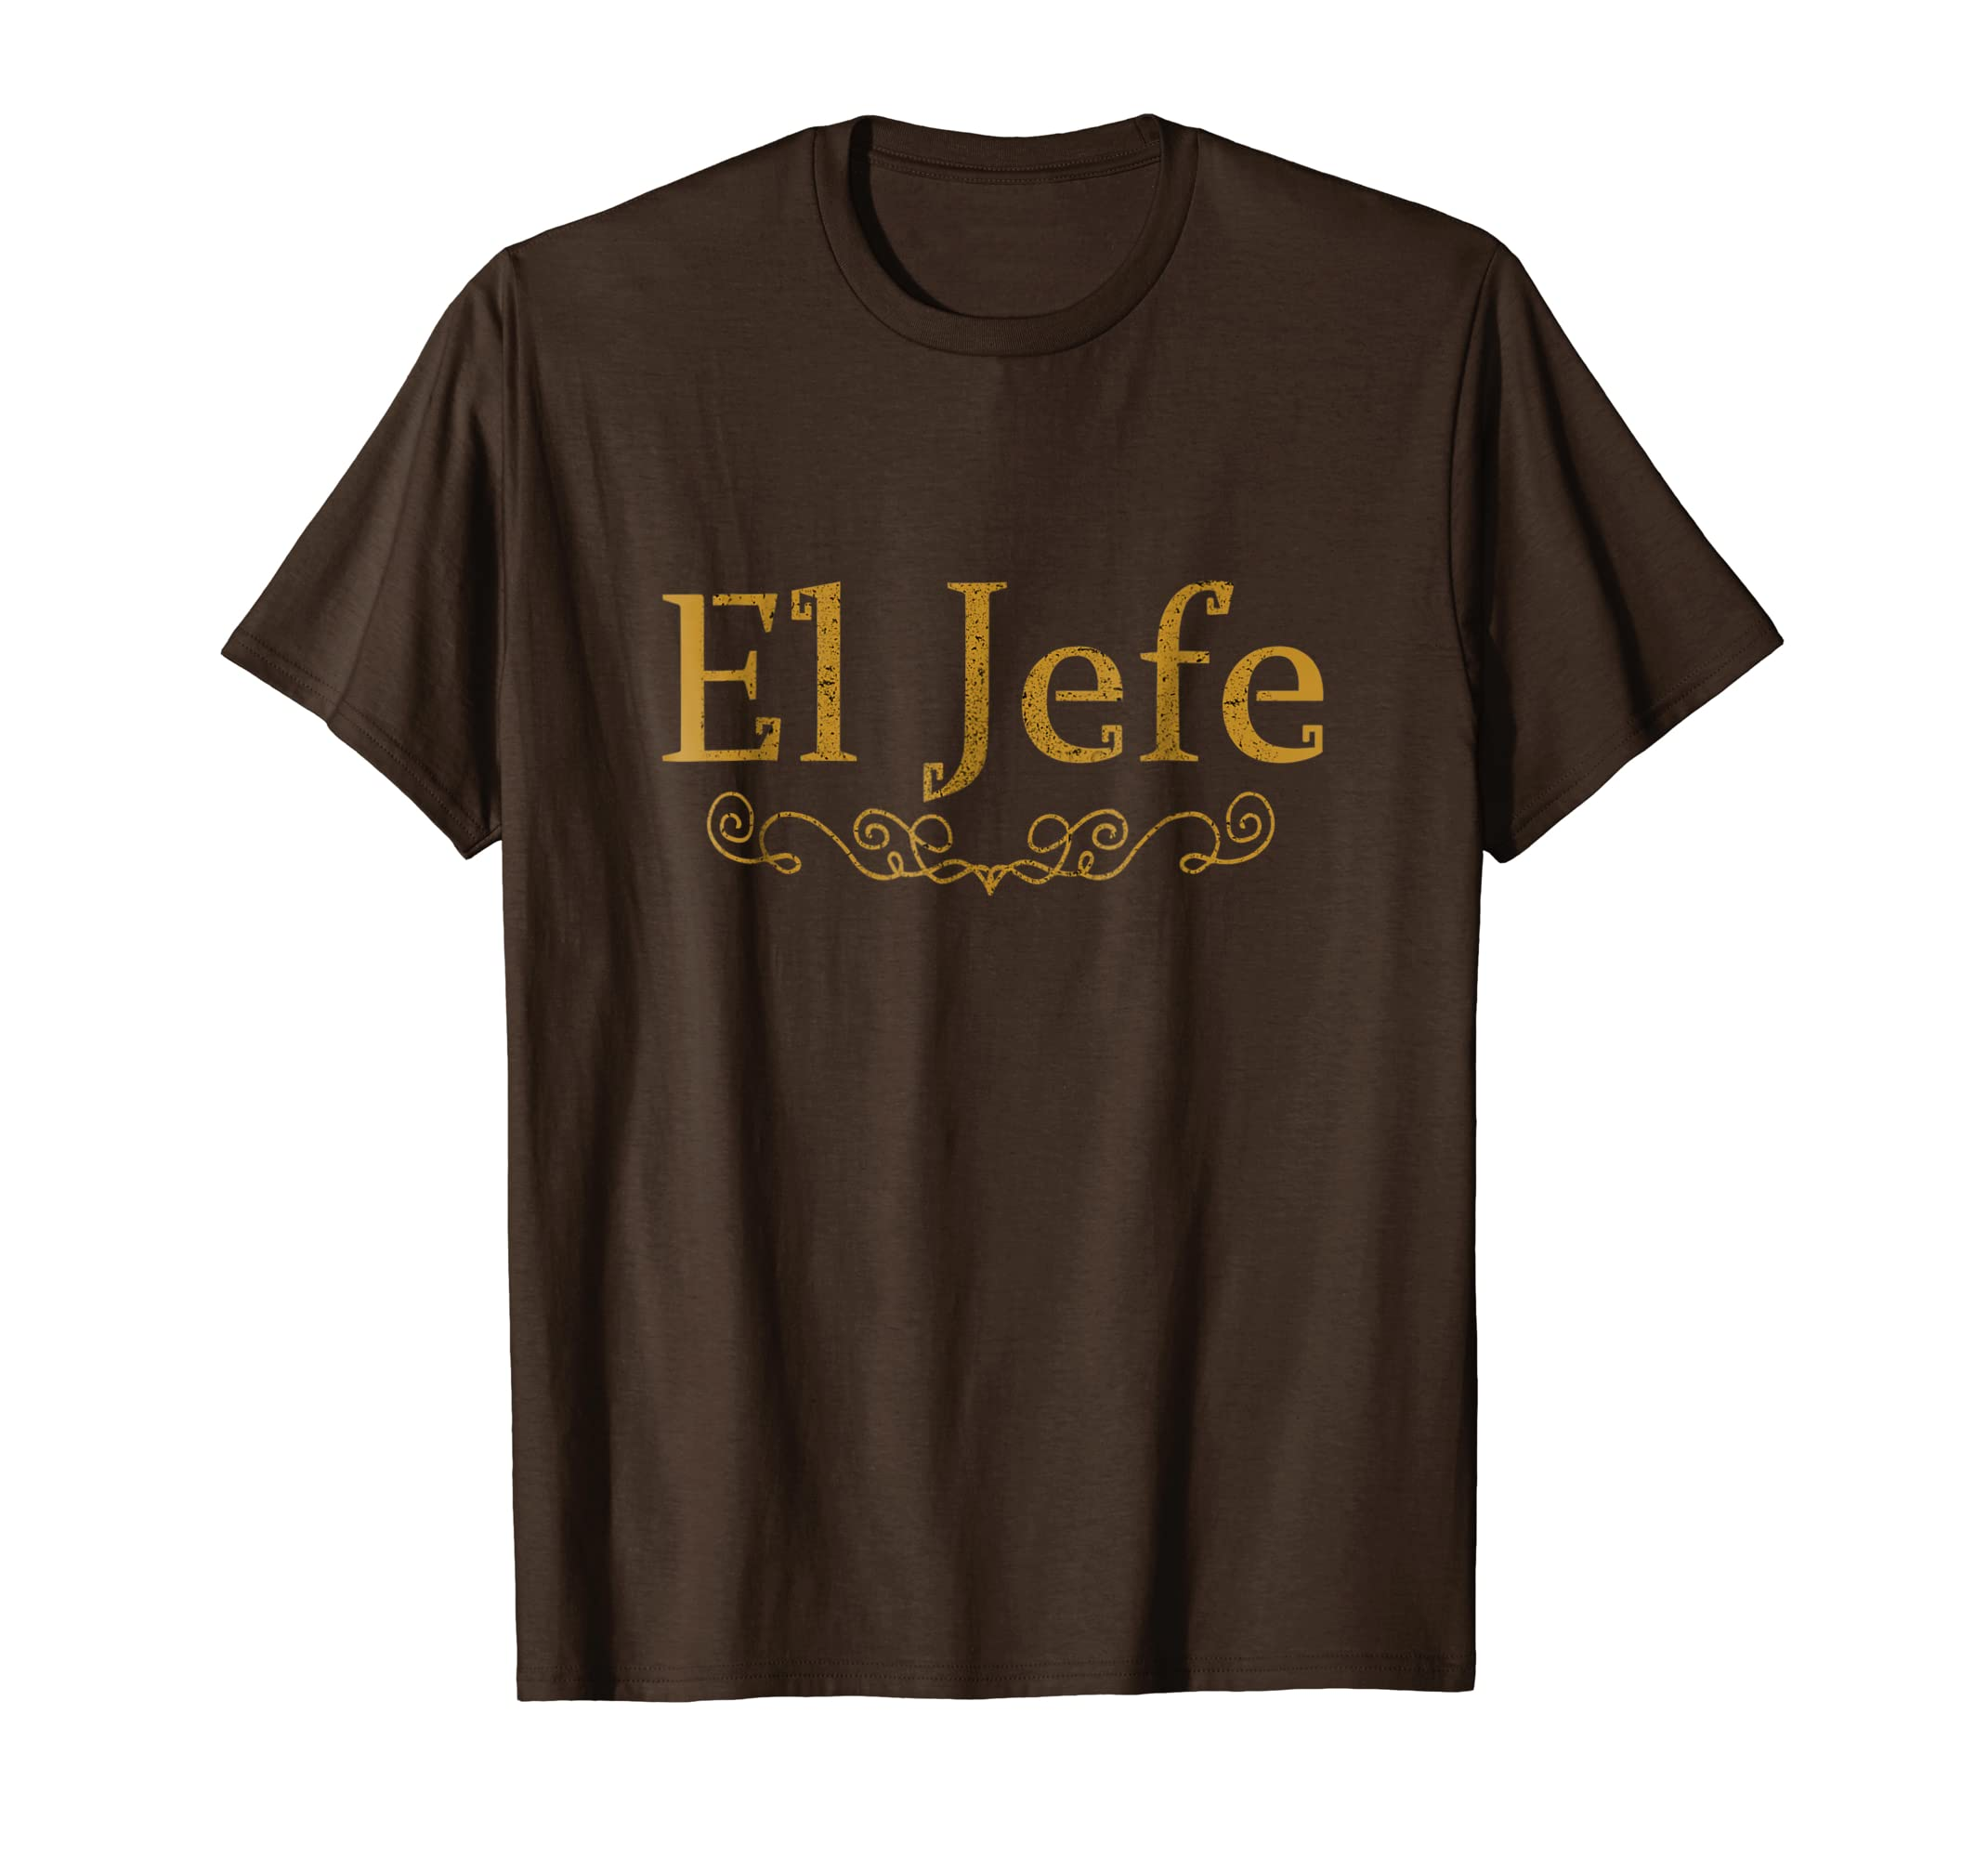 0d0b1a93a Amazon.com: The Boss in Spanish - El Jefe TShirt, Gift for Managers XMAS:  Clothing